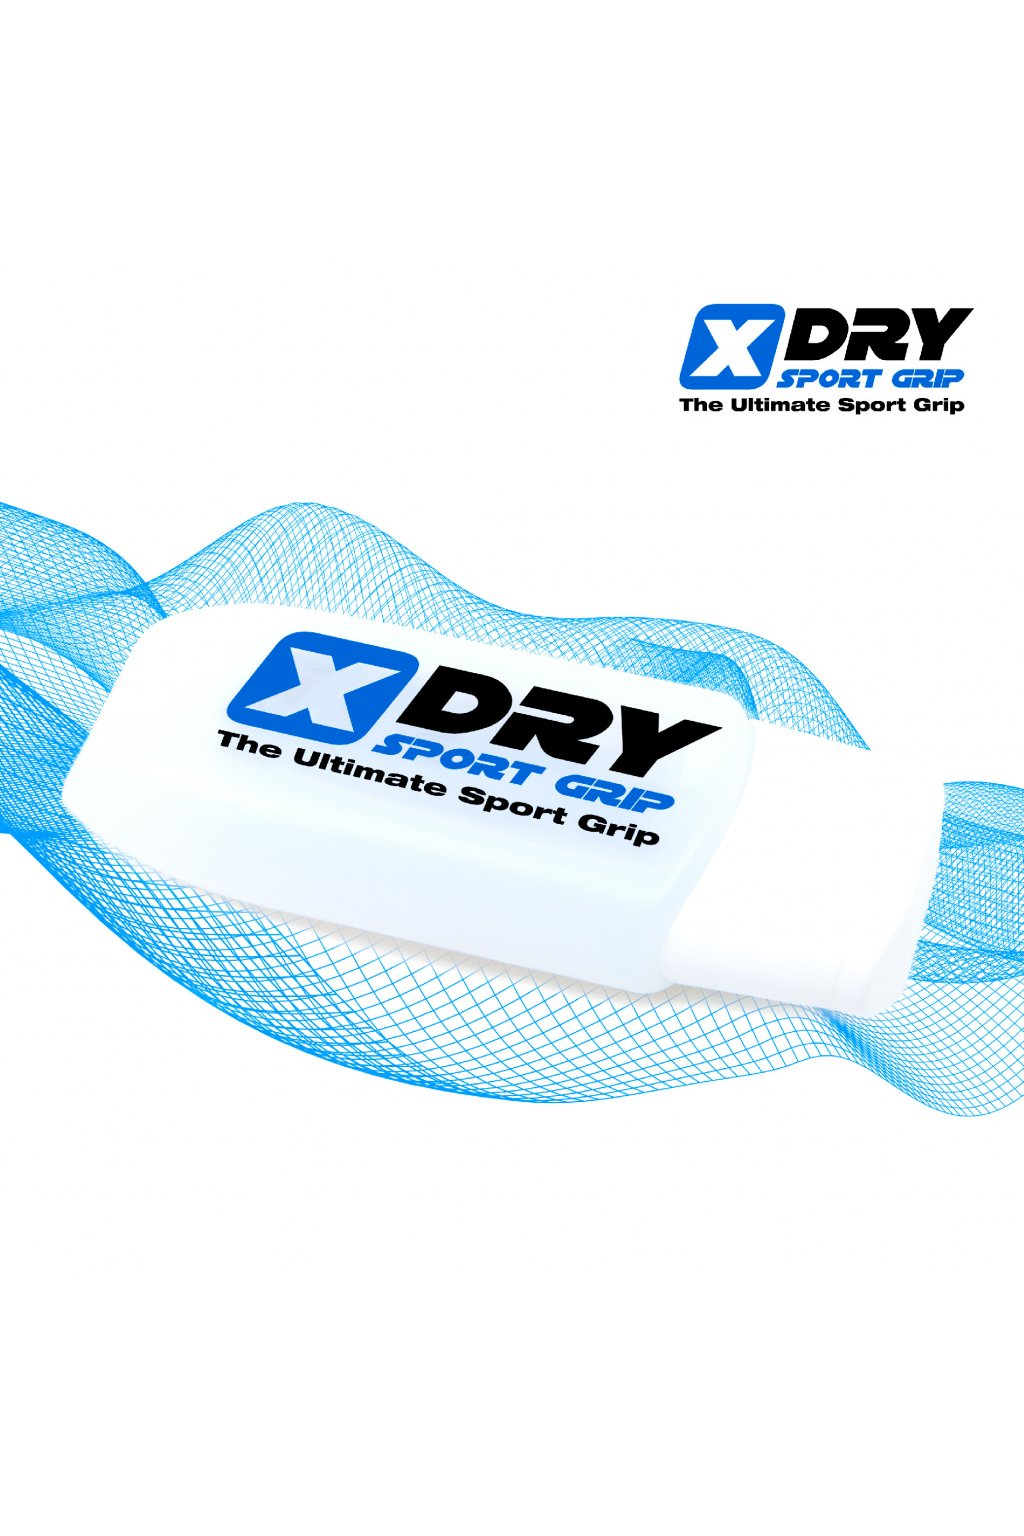 New X dry transparent packaging with webbing 1